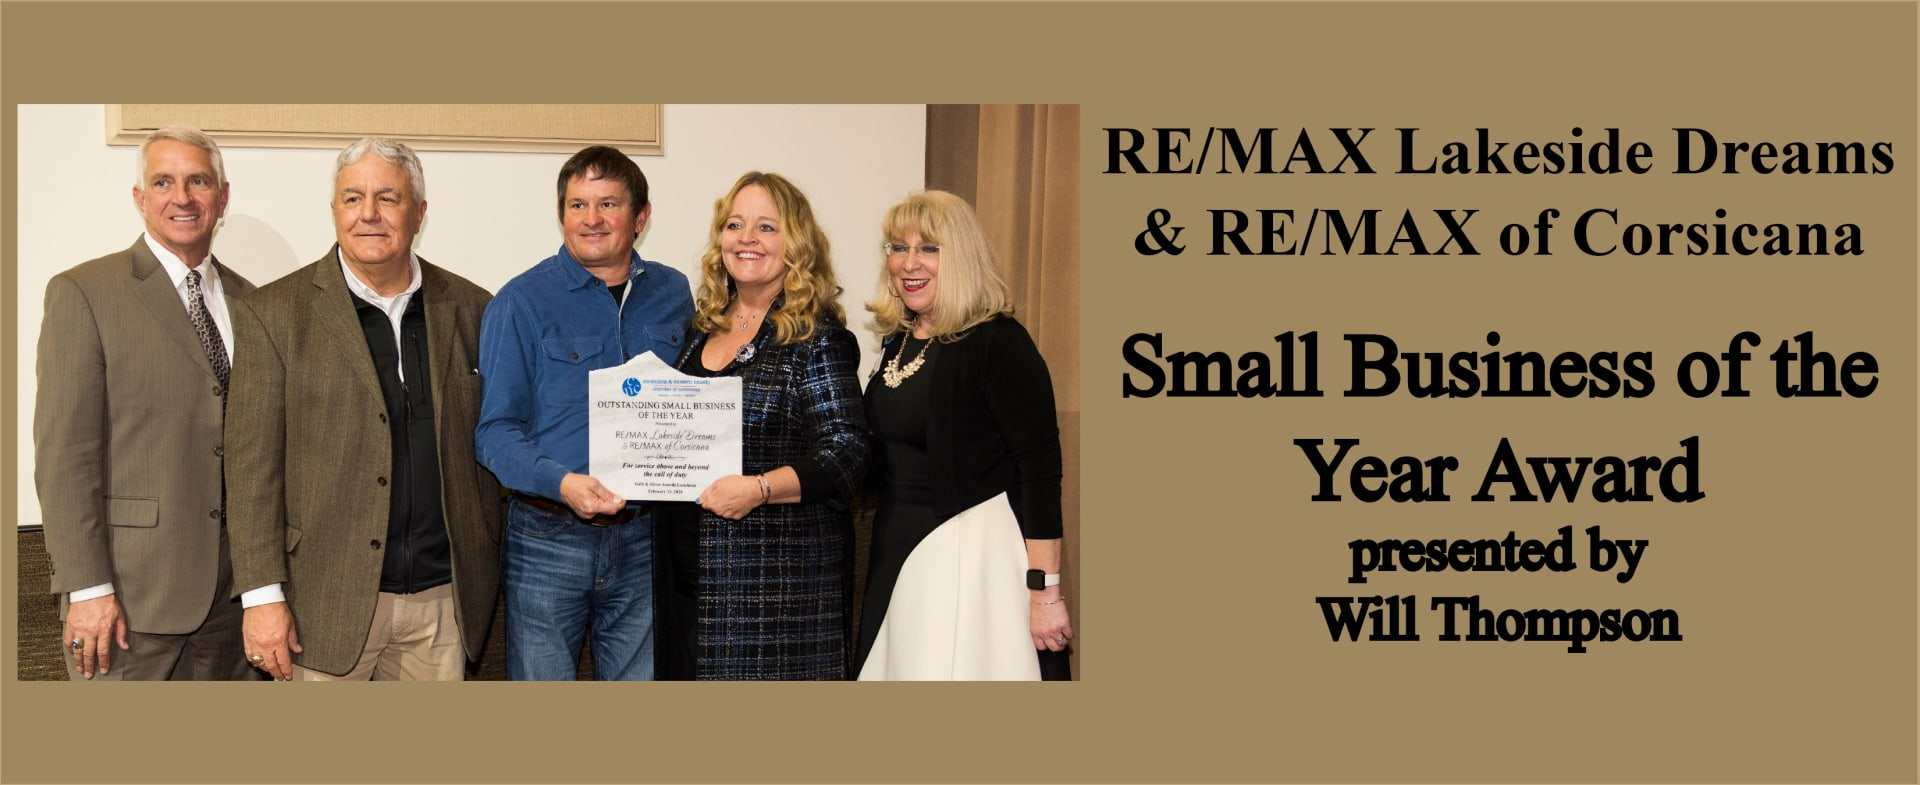 Remax---Small-Business-Award(1)-w1920.jpg